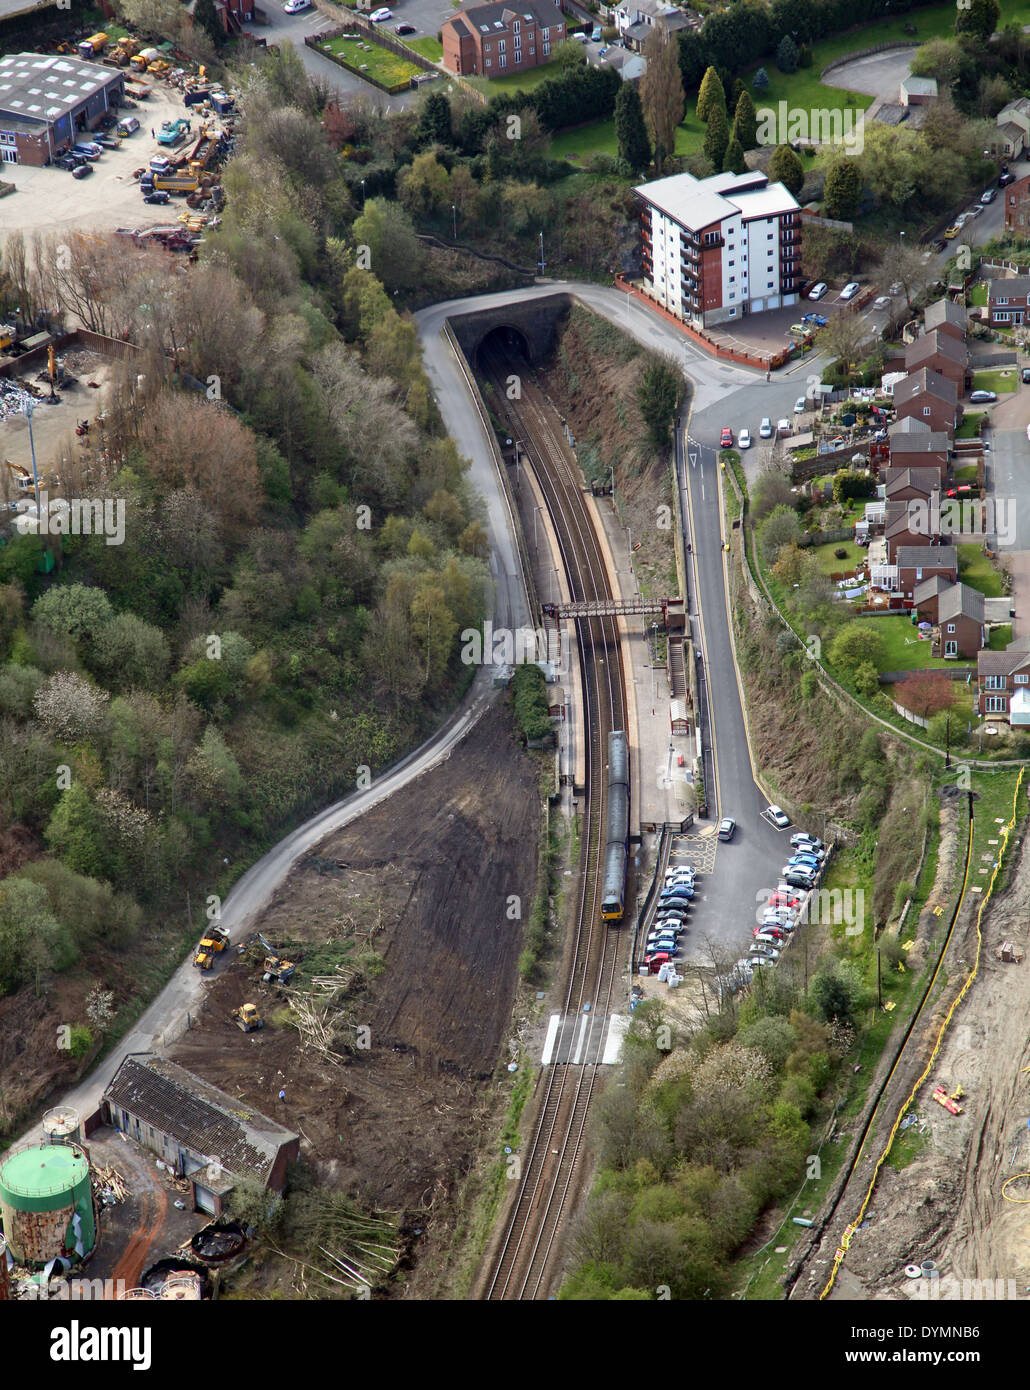 aerial view of Morley Station in West Yorkshire, with an adjacent railway tunnel - Stock Image